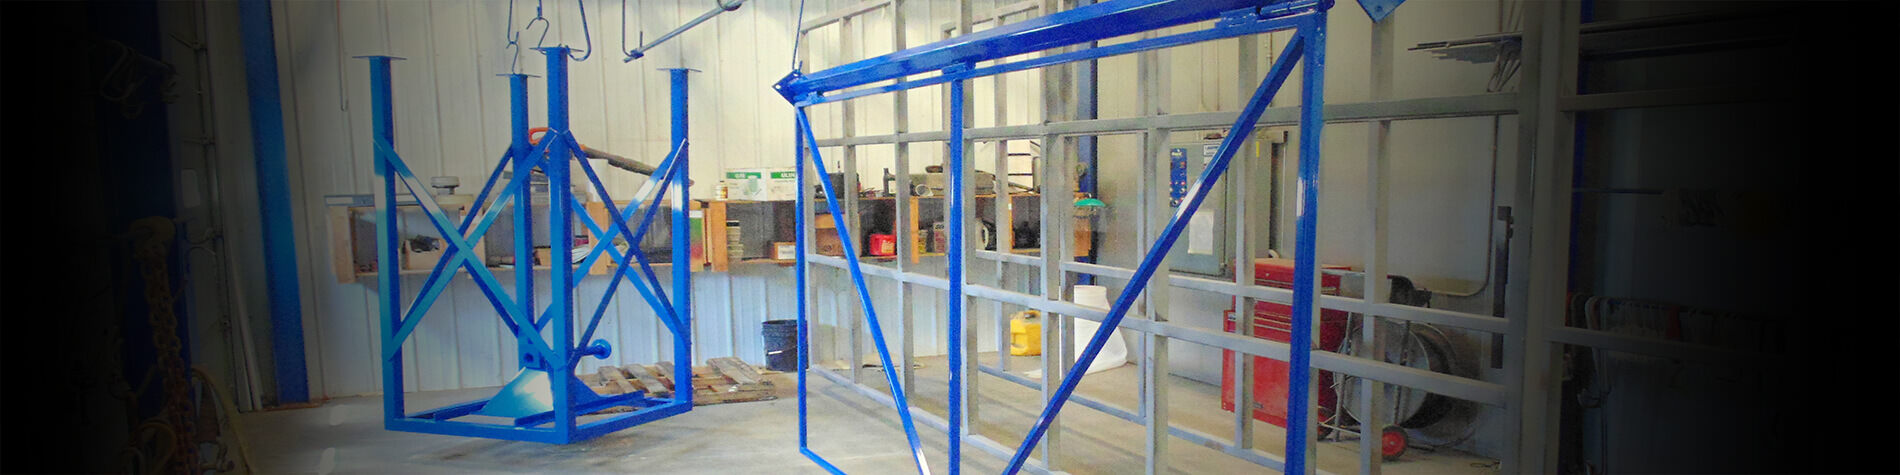 Items hang dry after powder coating application